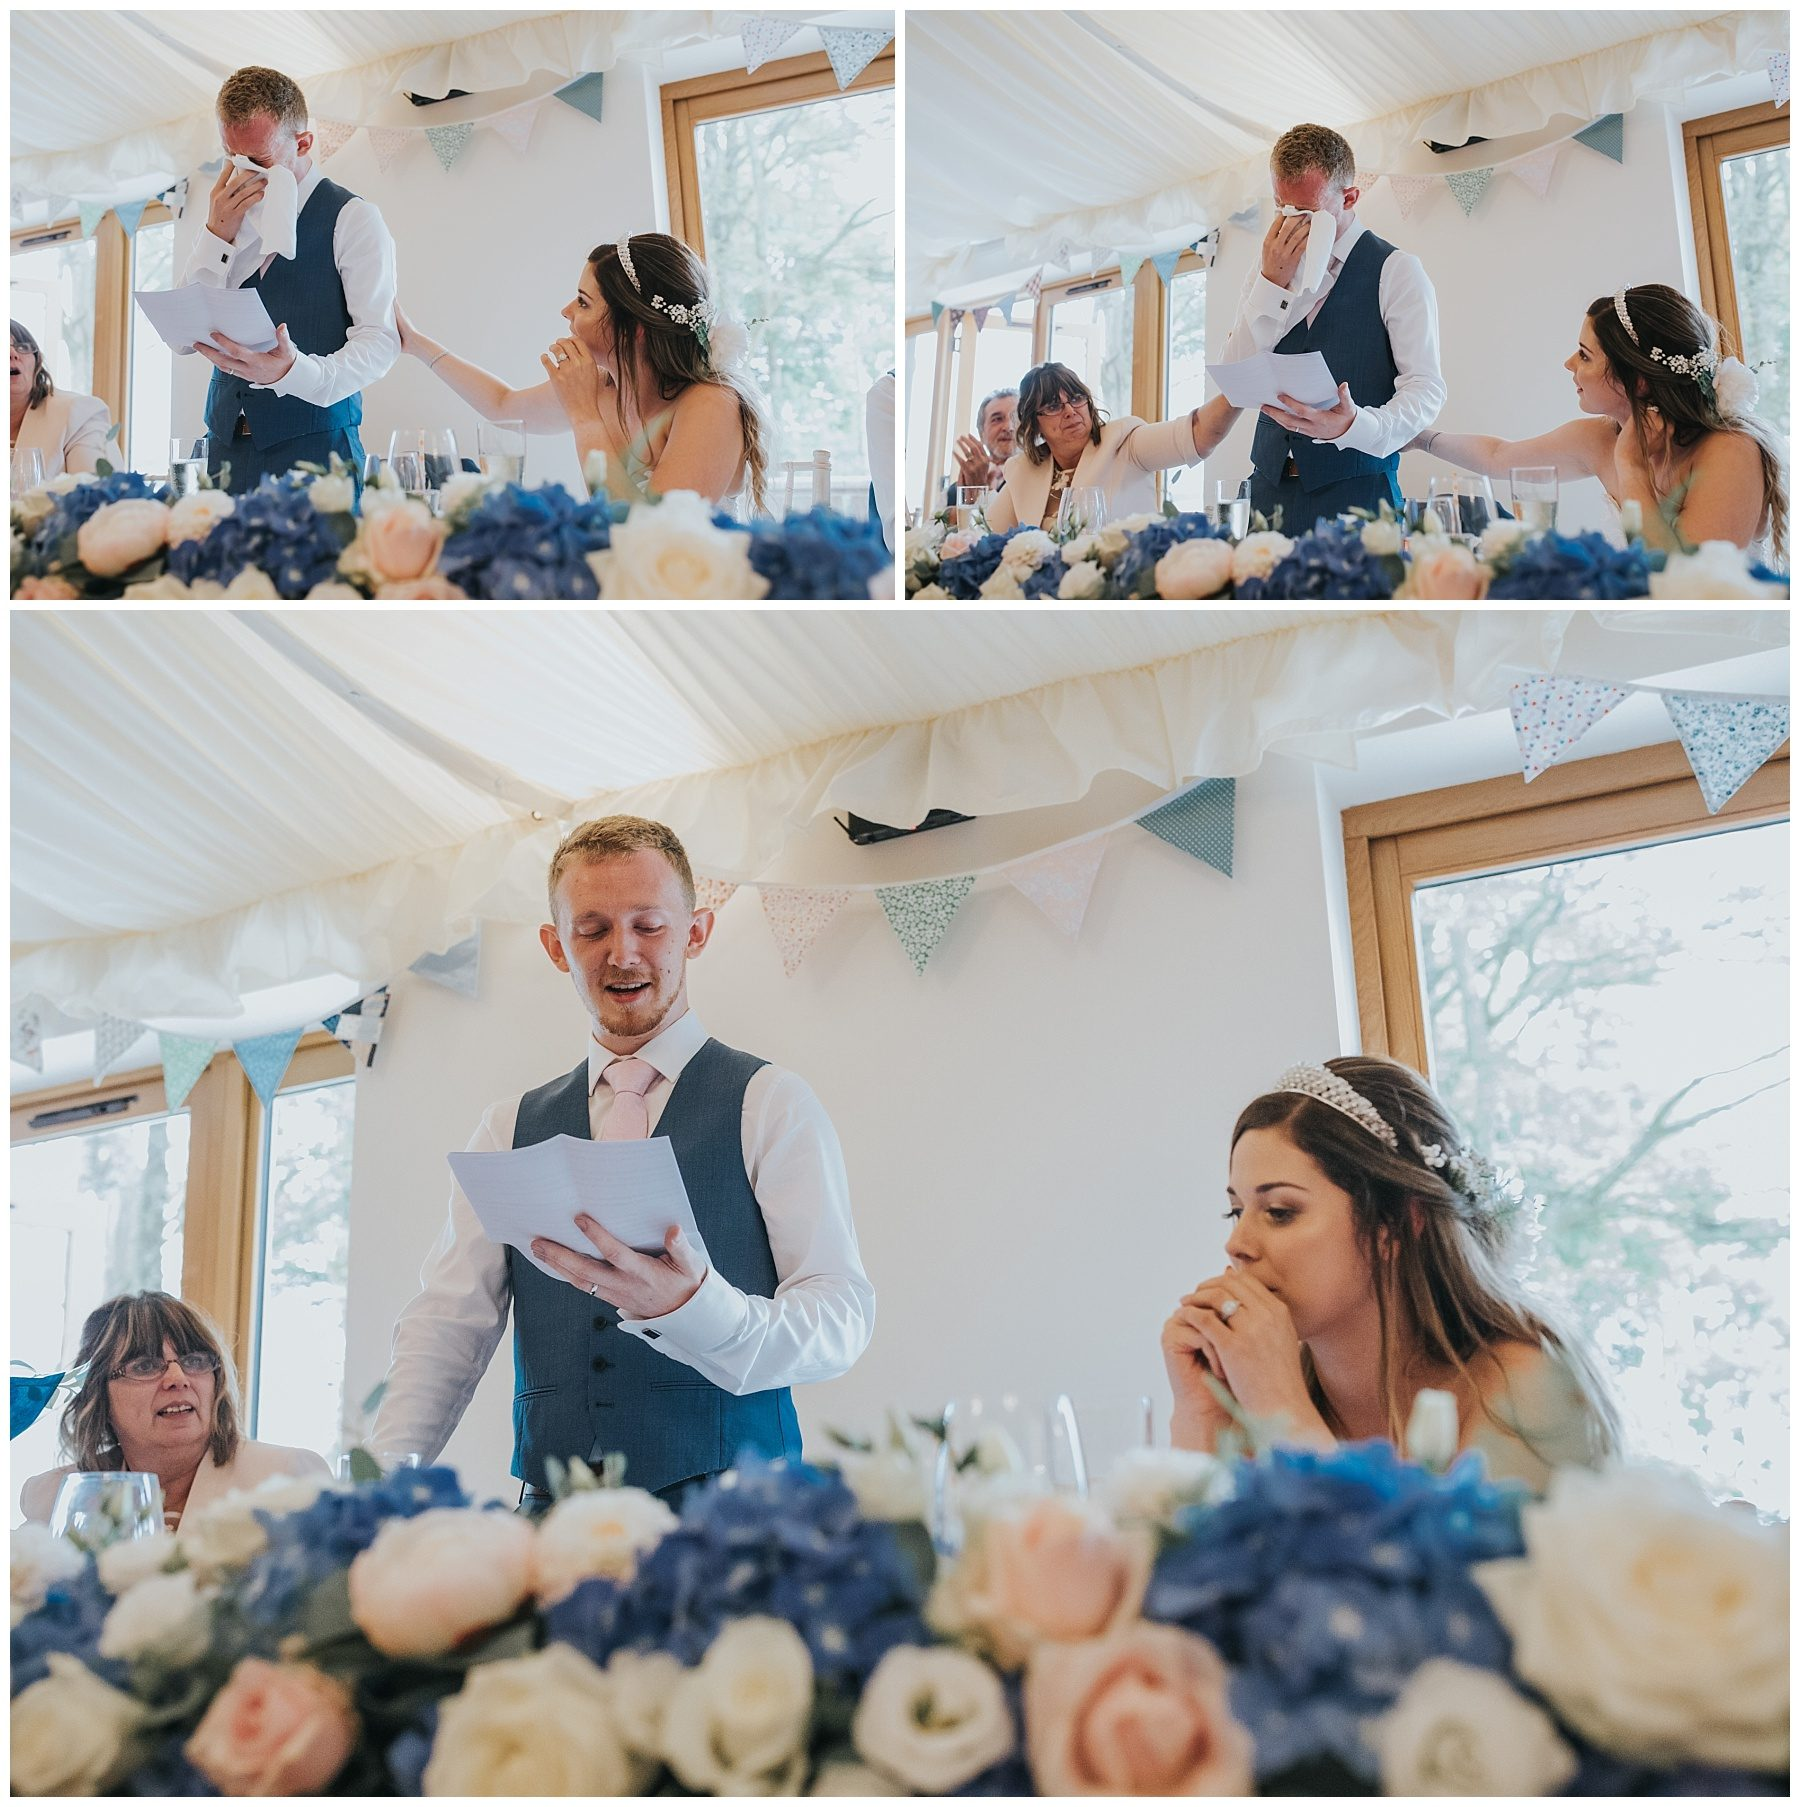 Emotional groom speech to bride